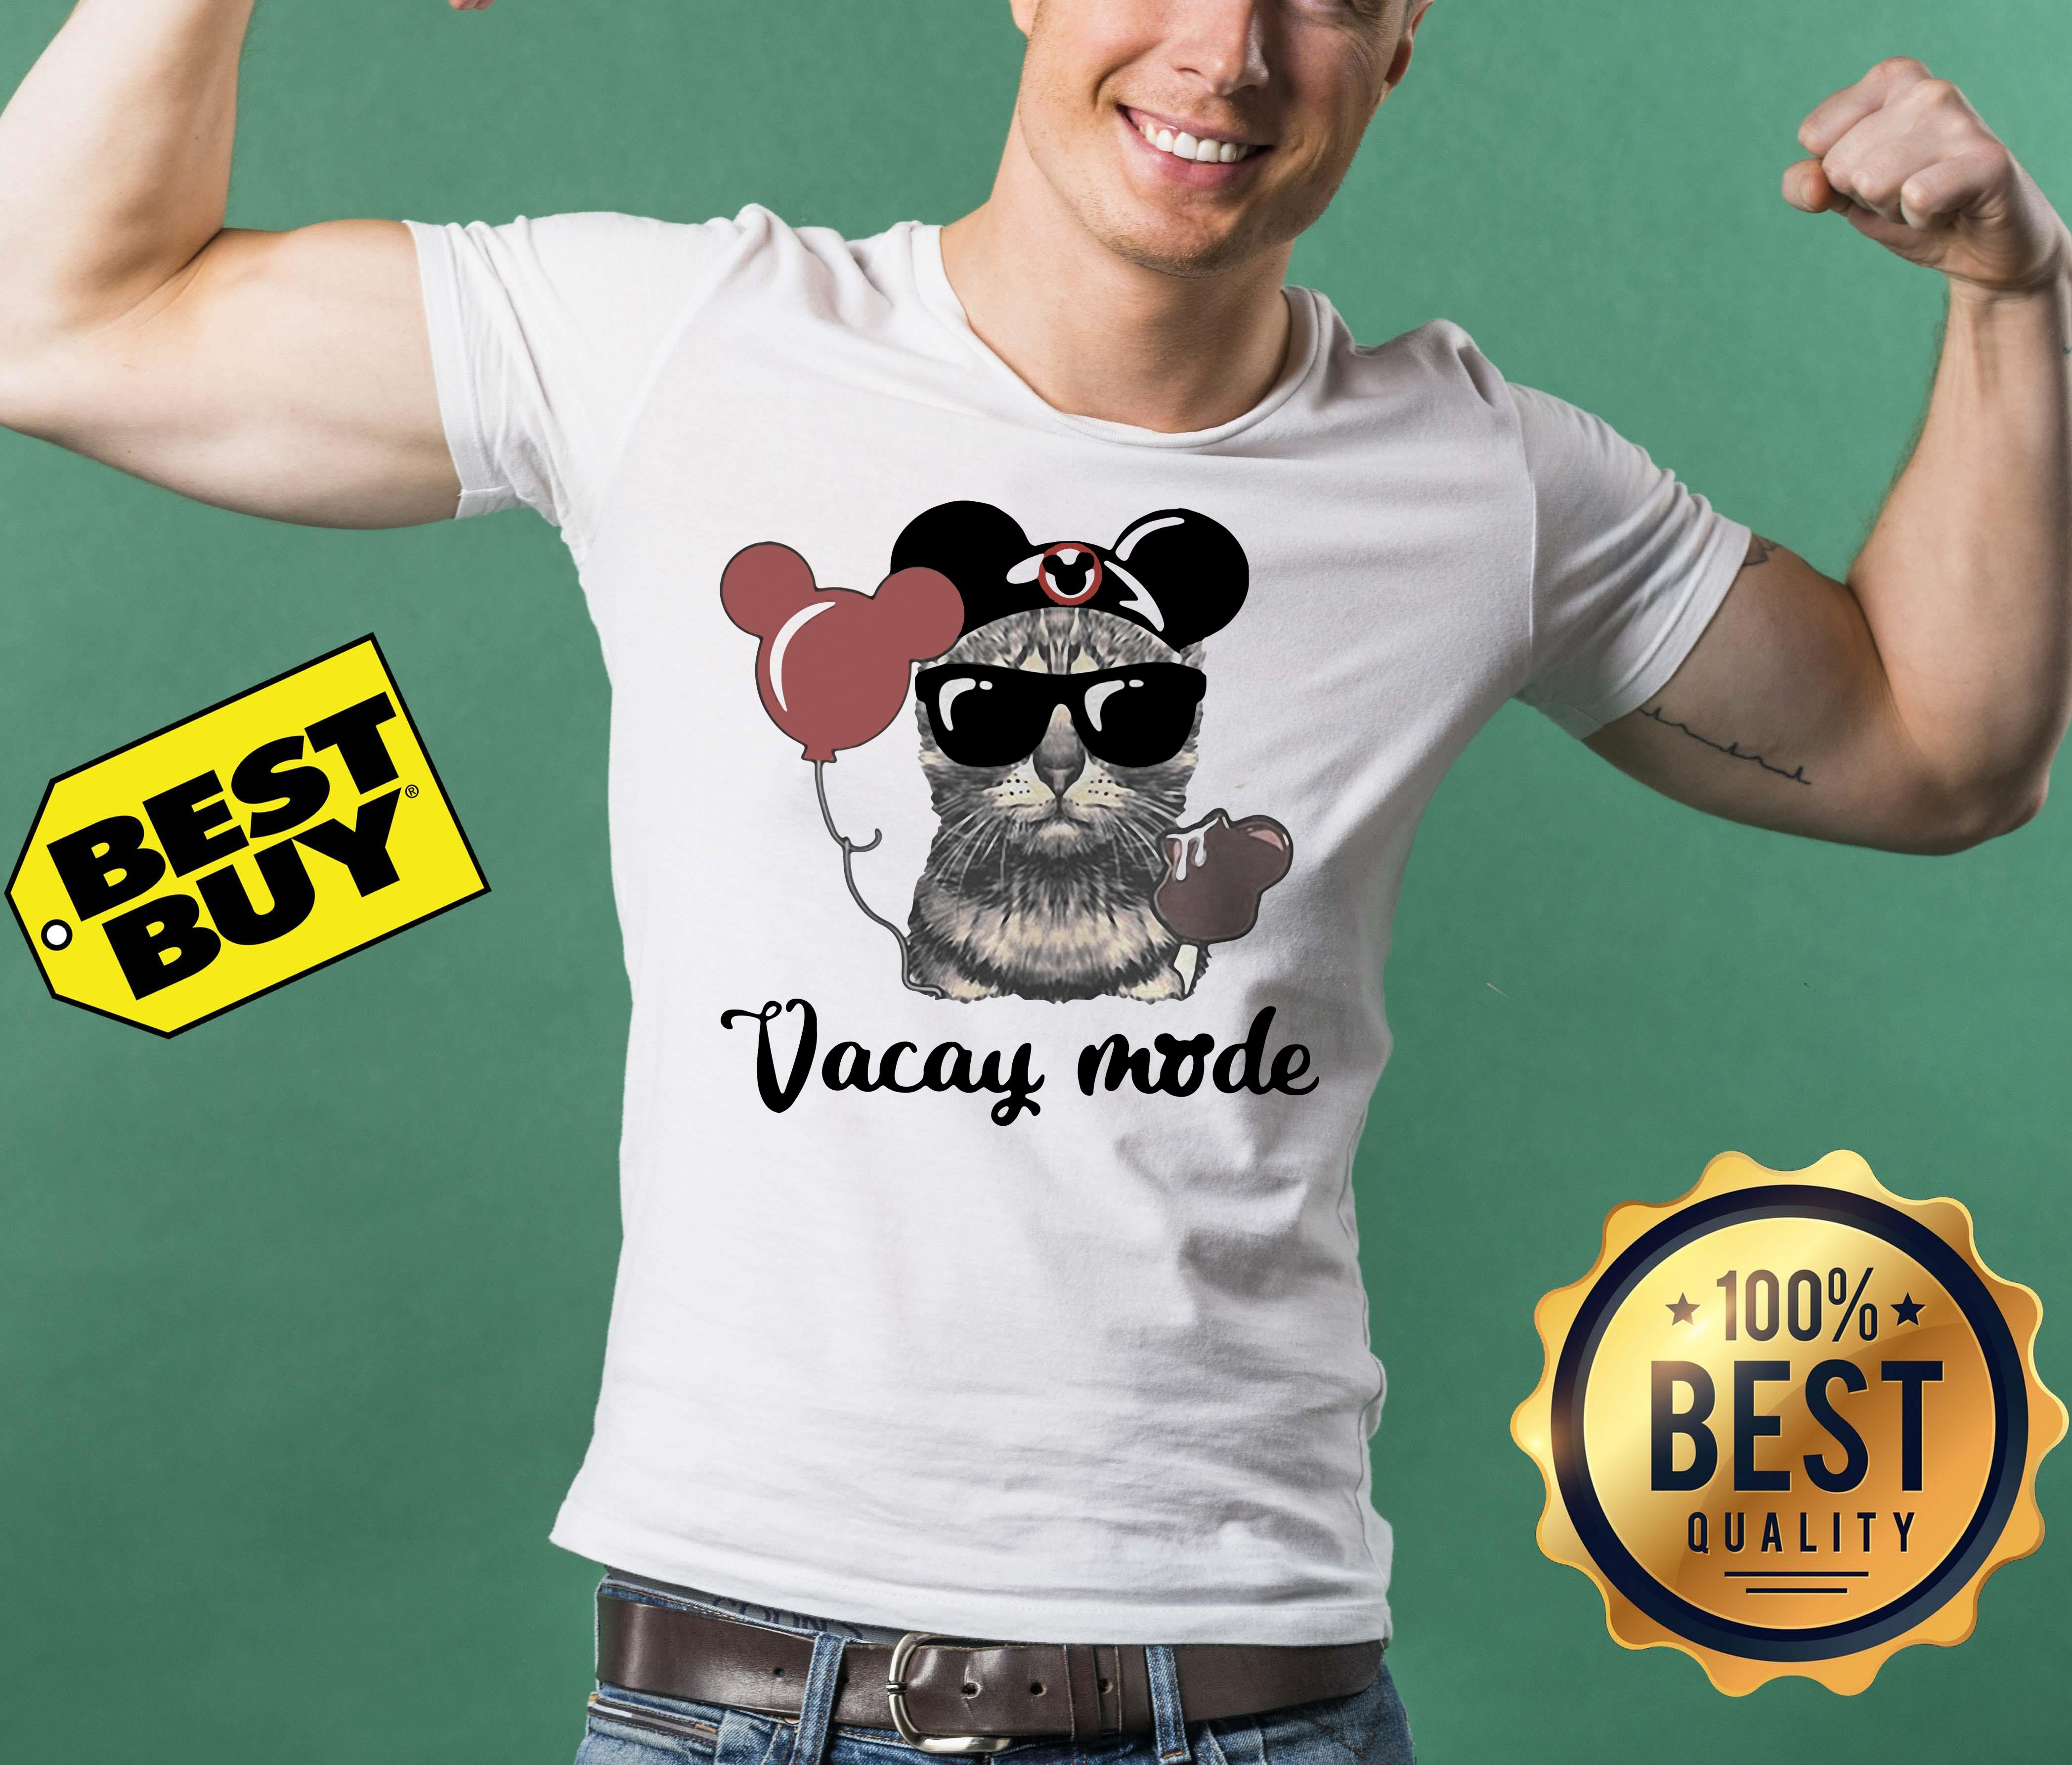 Cat with Mickey Mouse Ears Vacay mode tank top